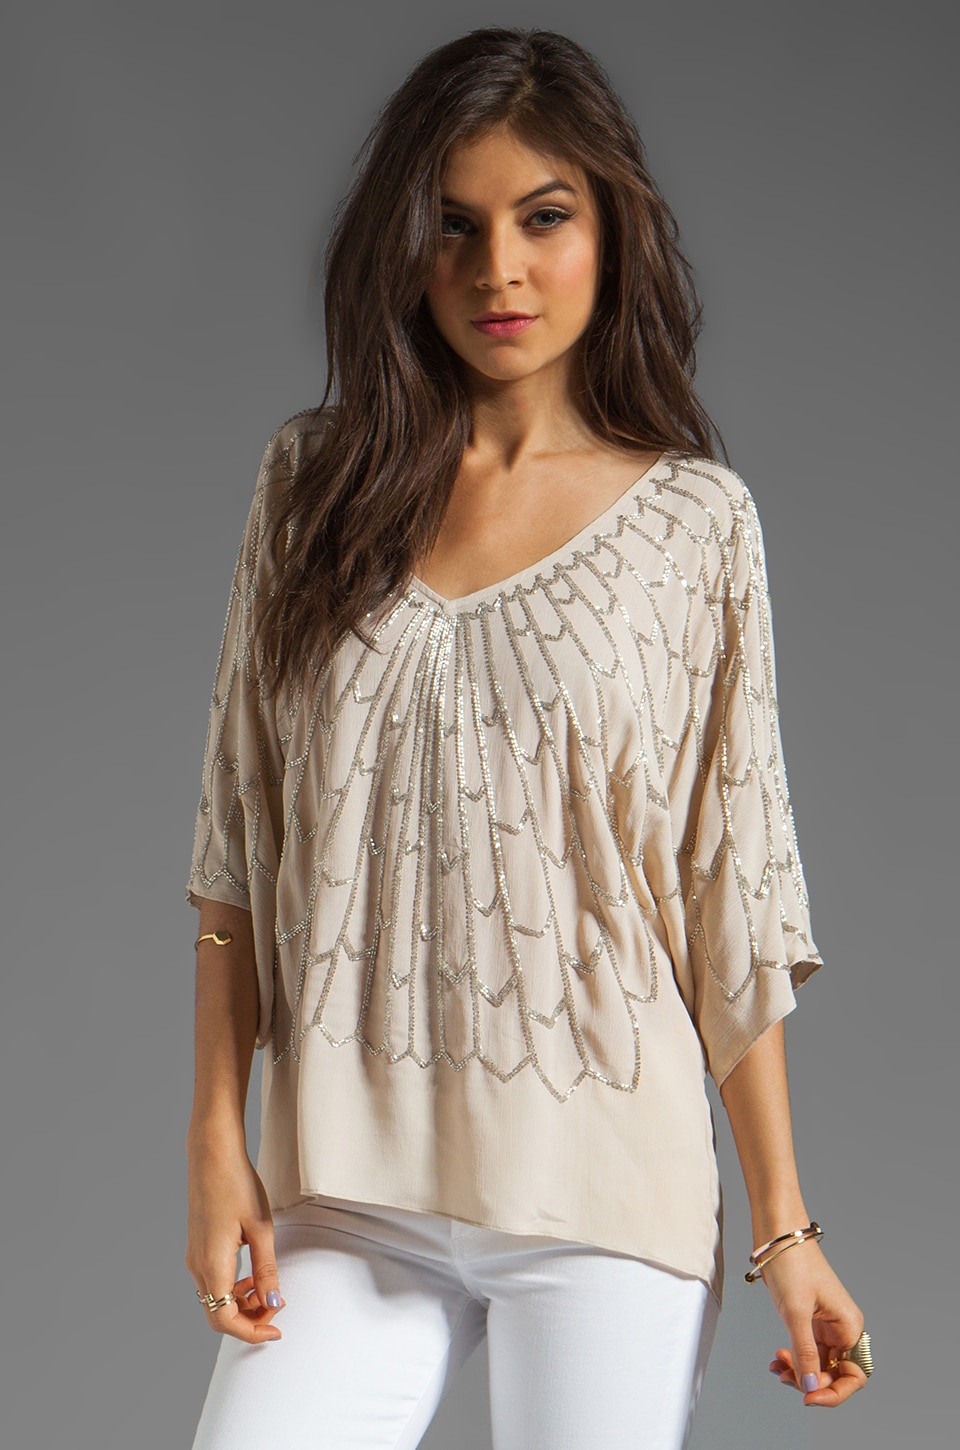 Tolani Diana Embellished Blouse in Ivory